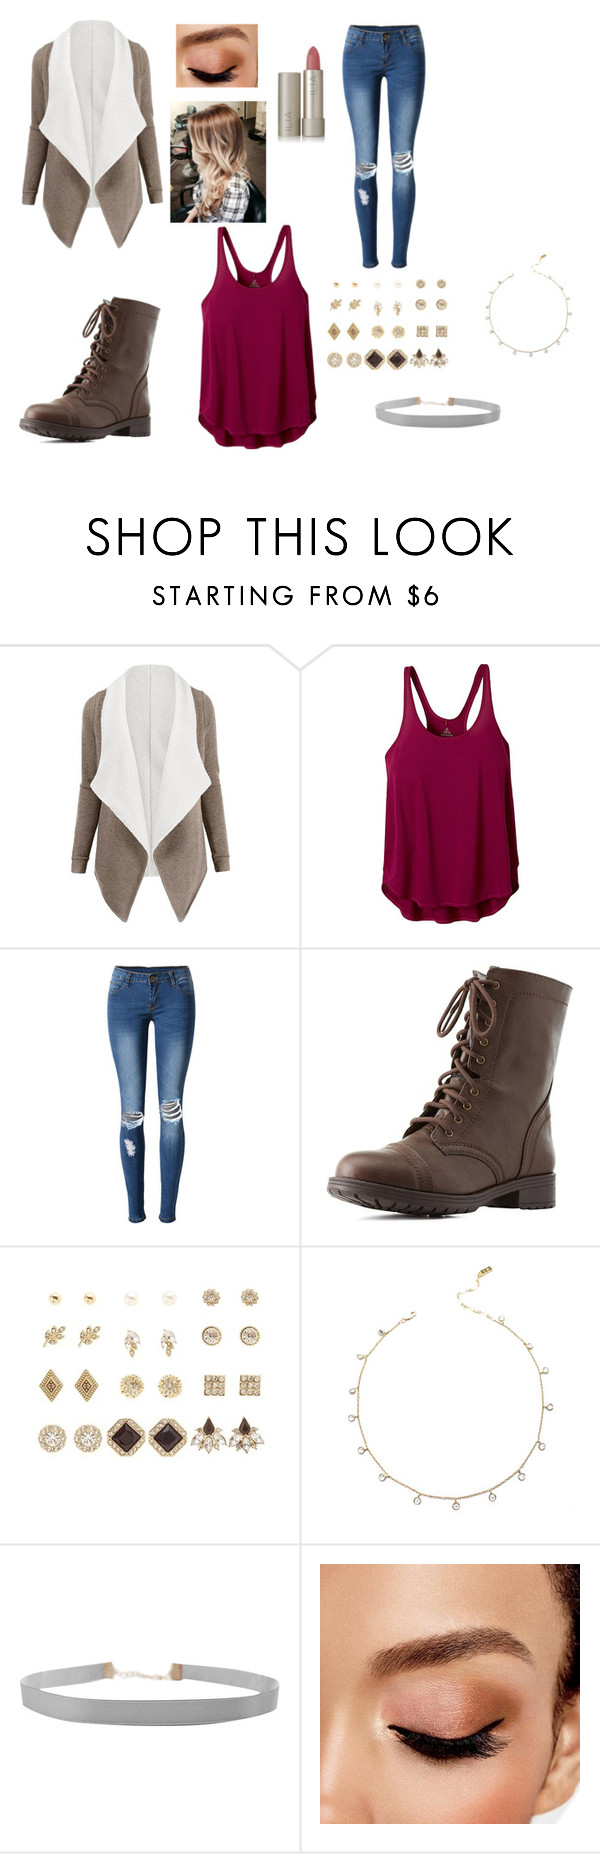 """""""Untitled #272"""" by mcl2000 on Polyvore featuring prAna, WithChic, Charlotte Russe, Humble Chic, Avon and Ilia"""